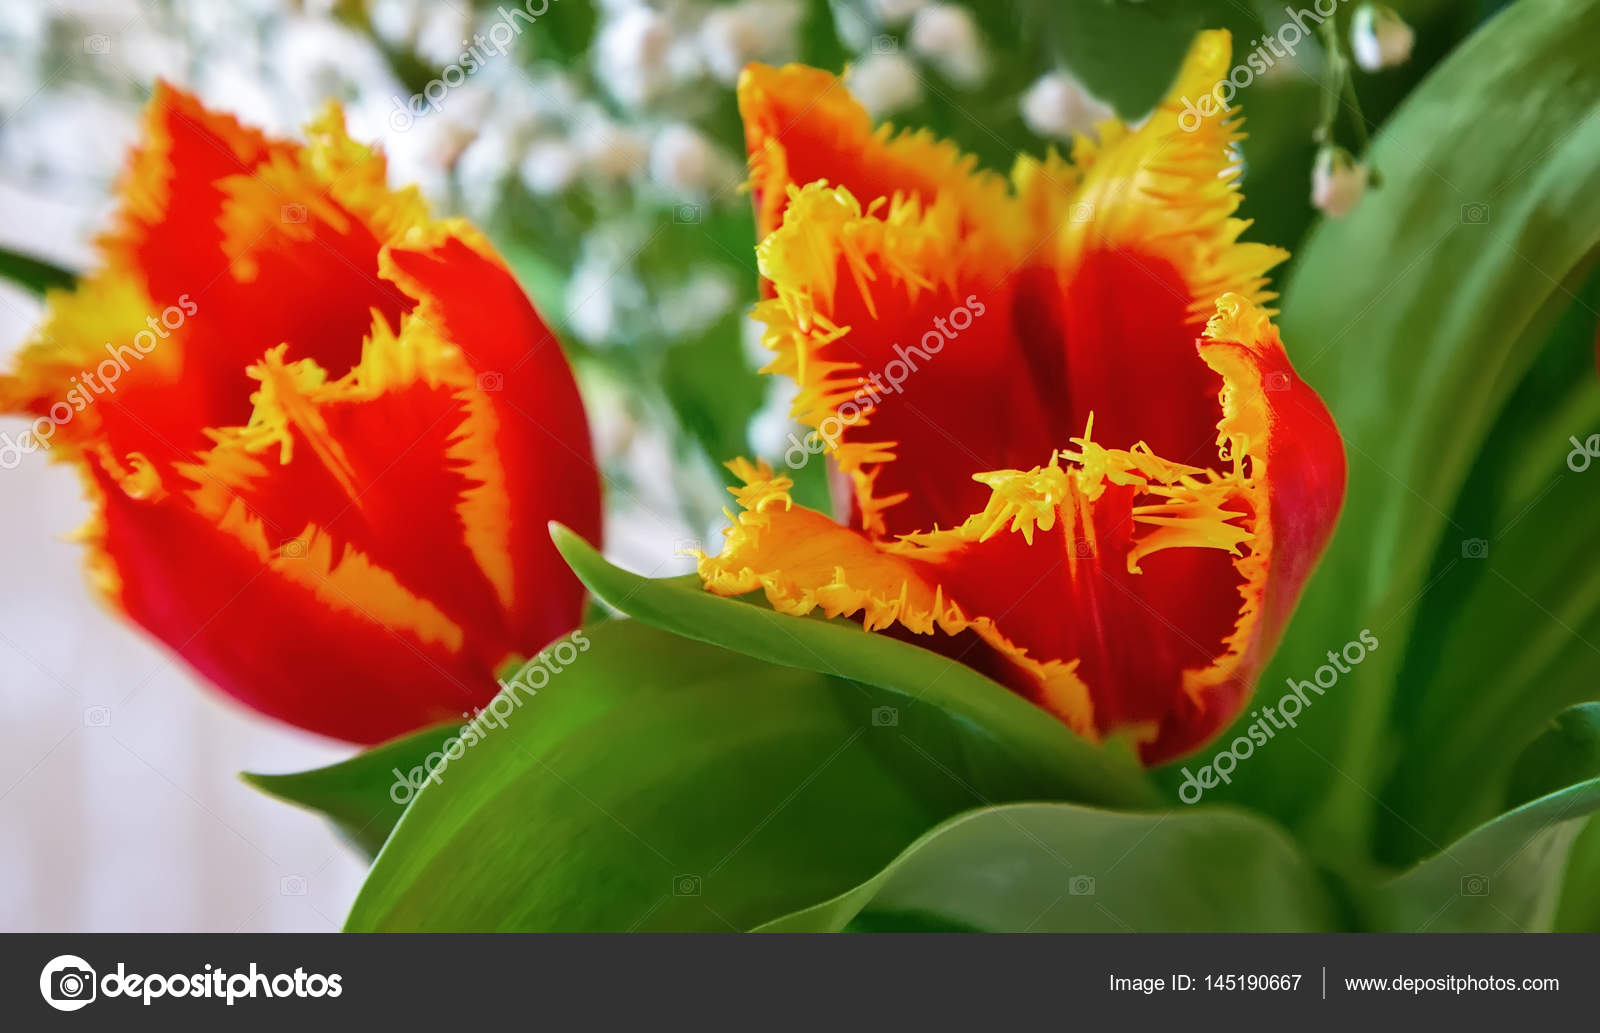 Two Red Tulip With Yellow Edging On The Flowers Stock Photo Image By Georgina198 145190667